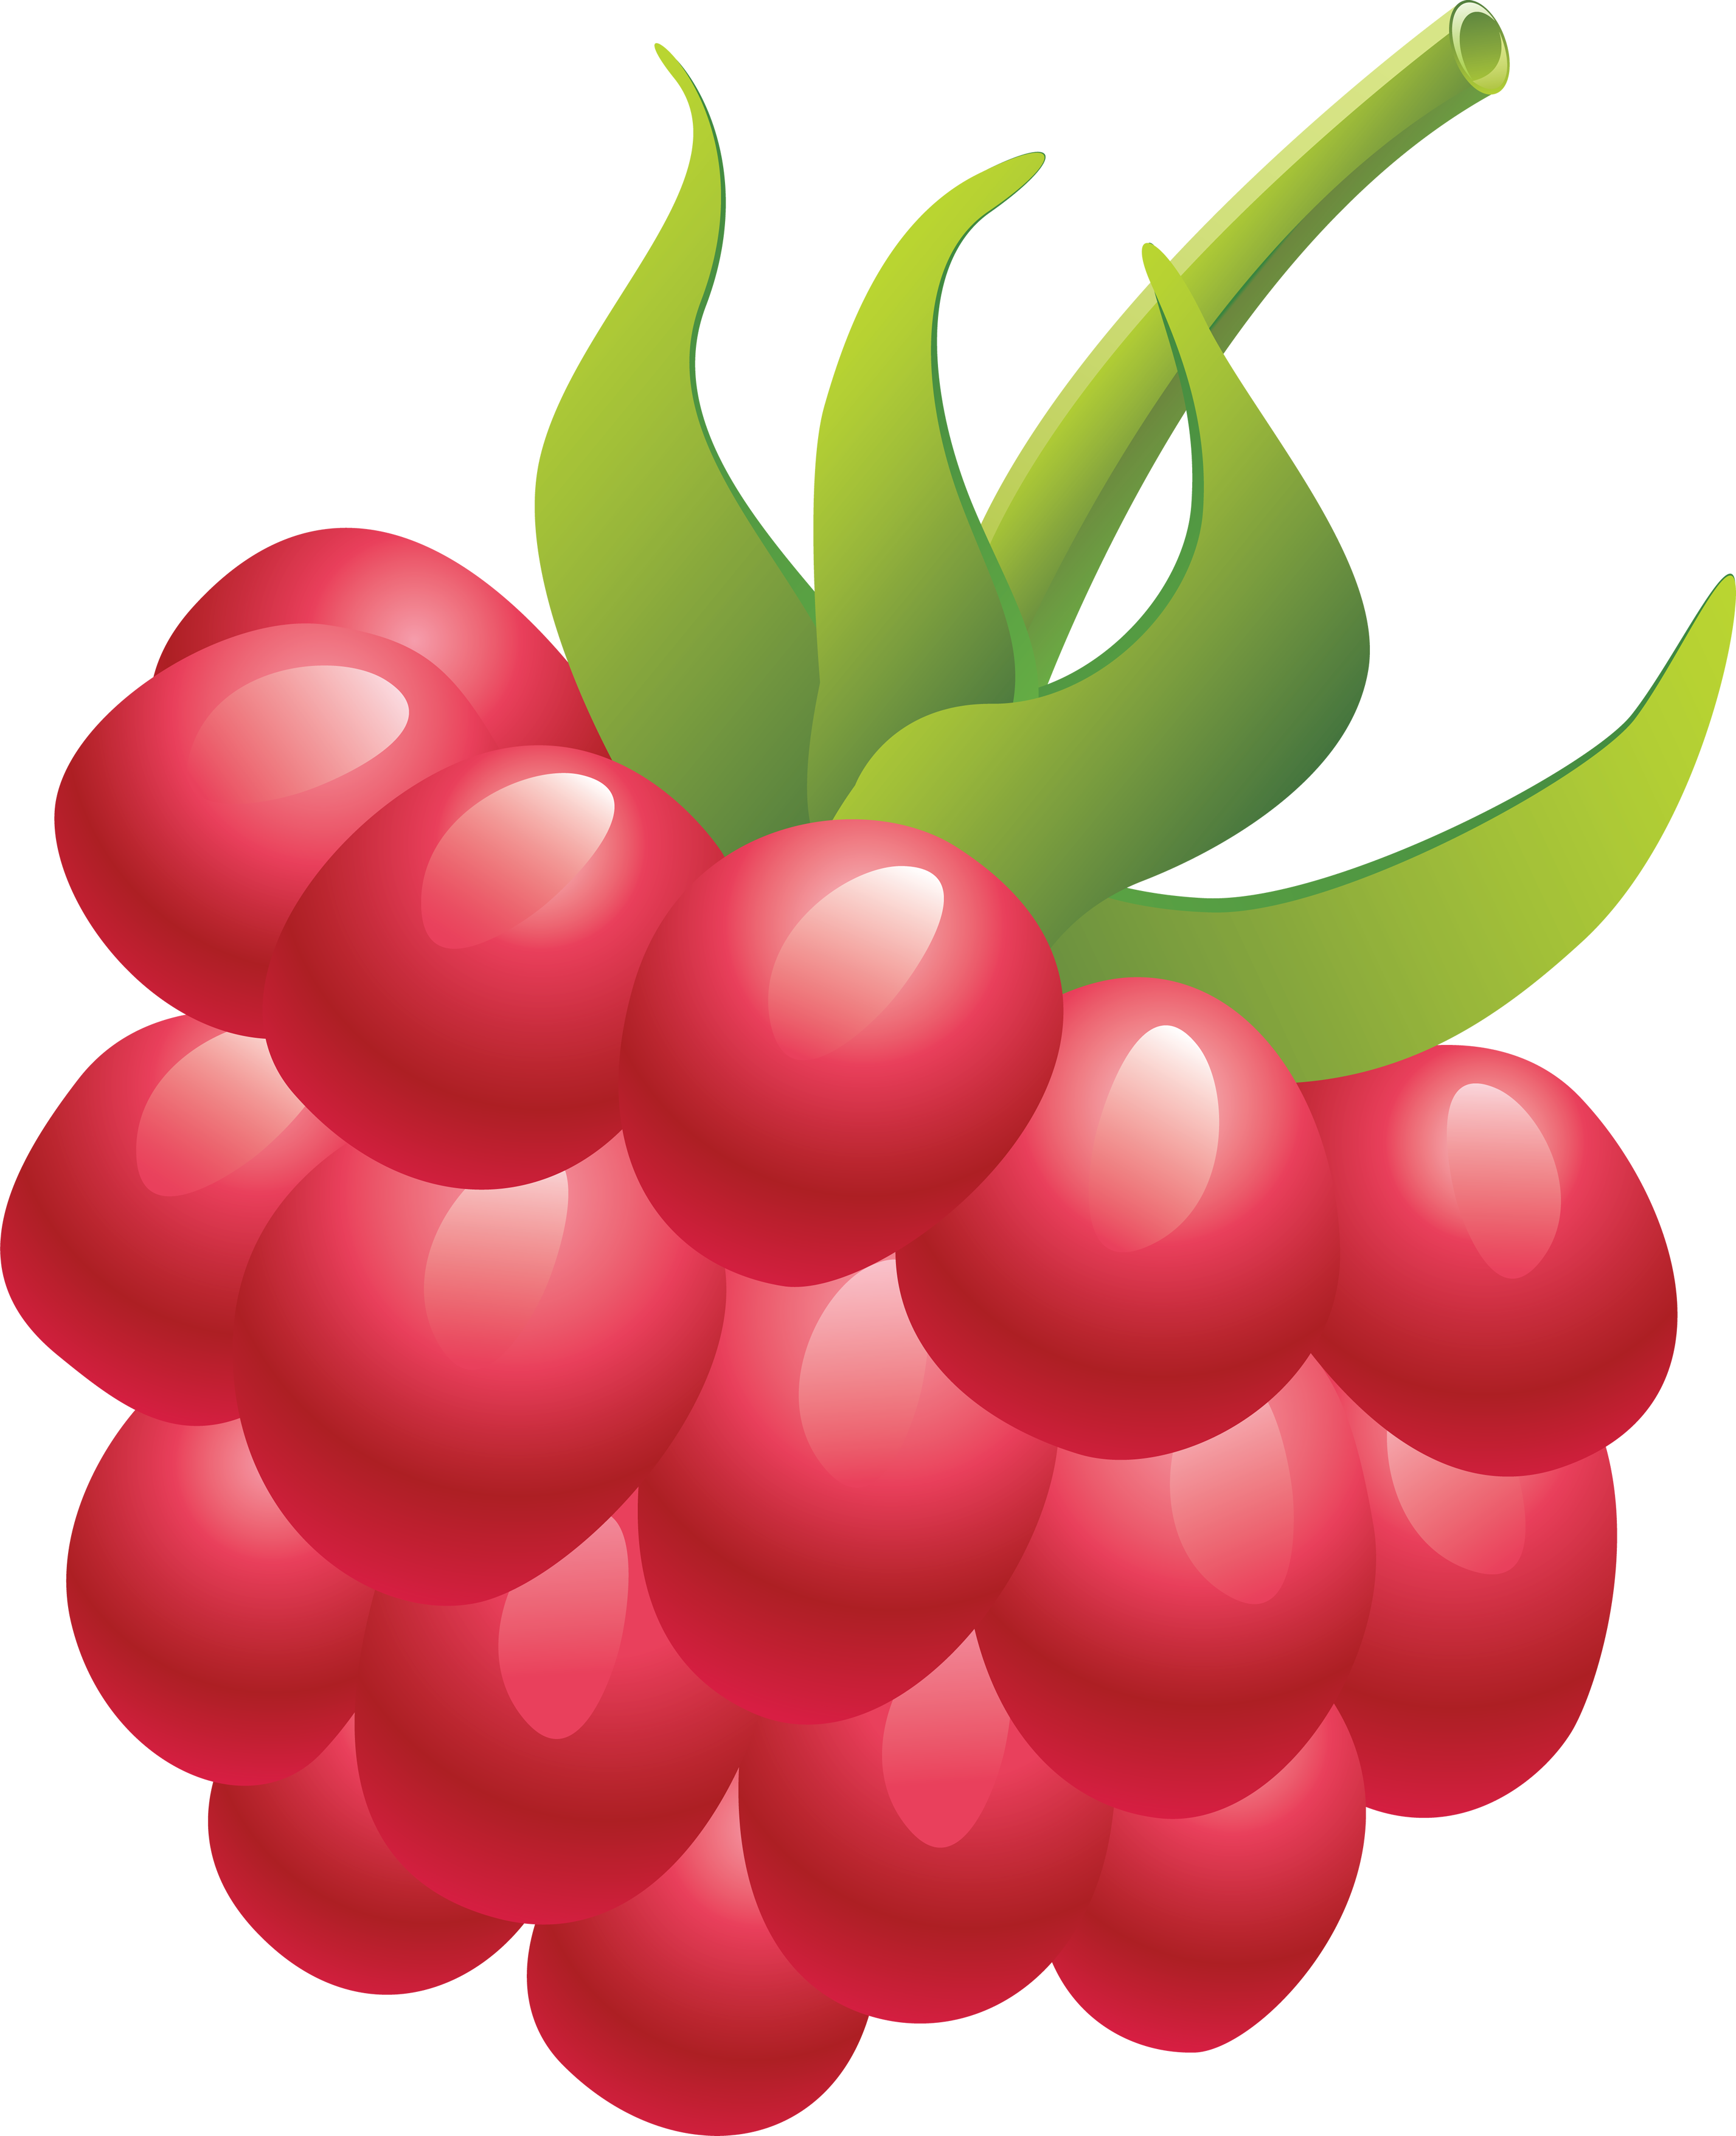 Rapsberry clipart Rraspberry images download Raspberry free